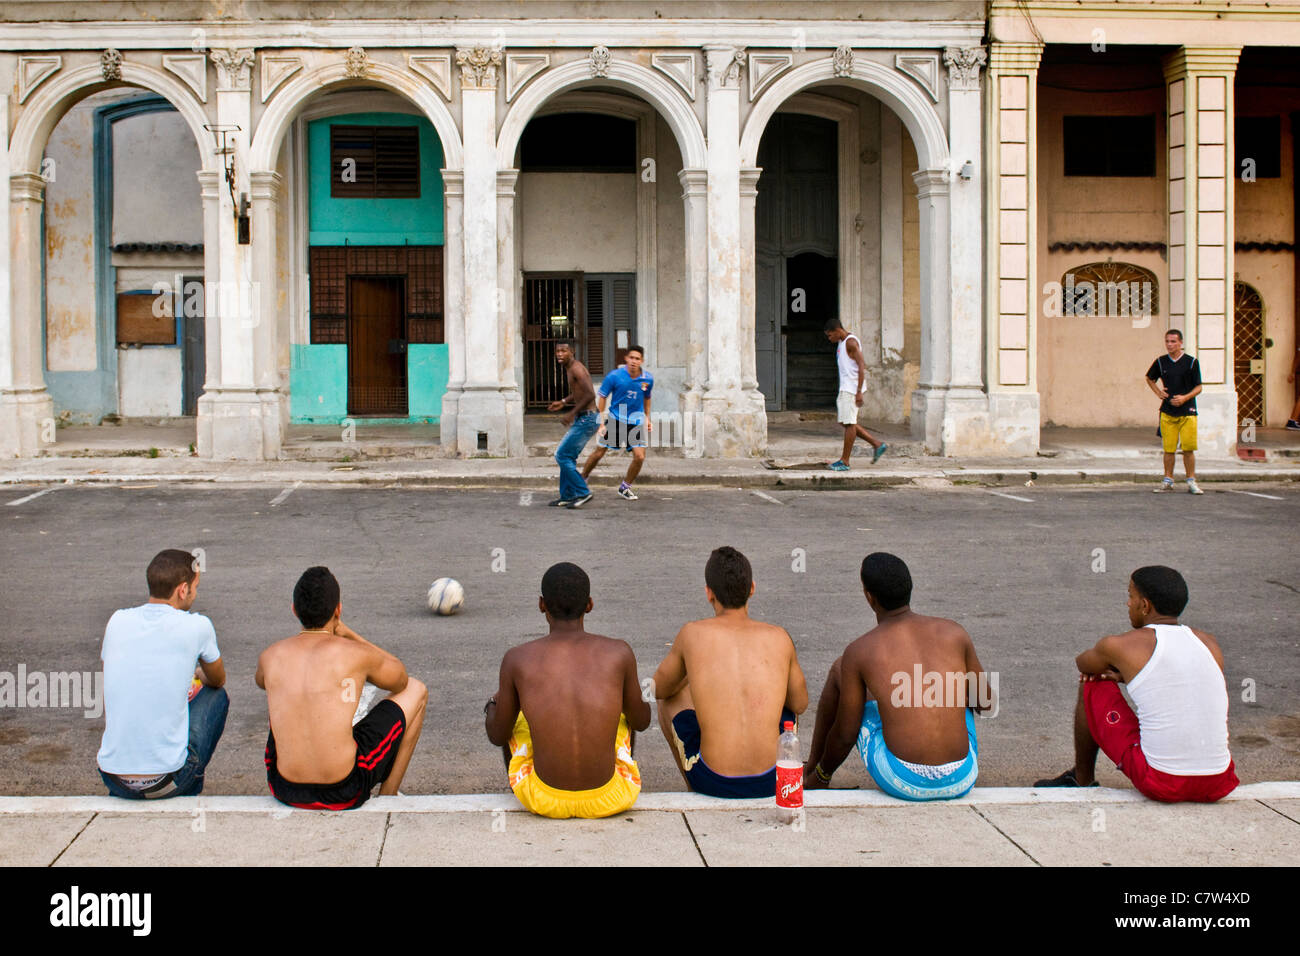 Cuba, Havana,football match in the city center - Stock Image